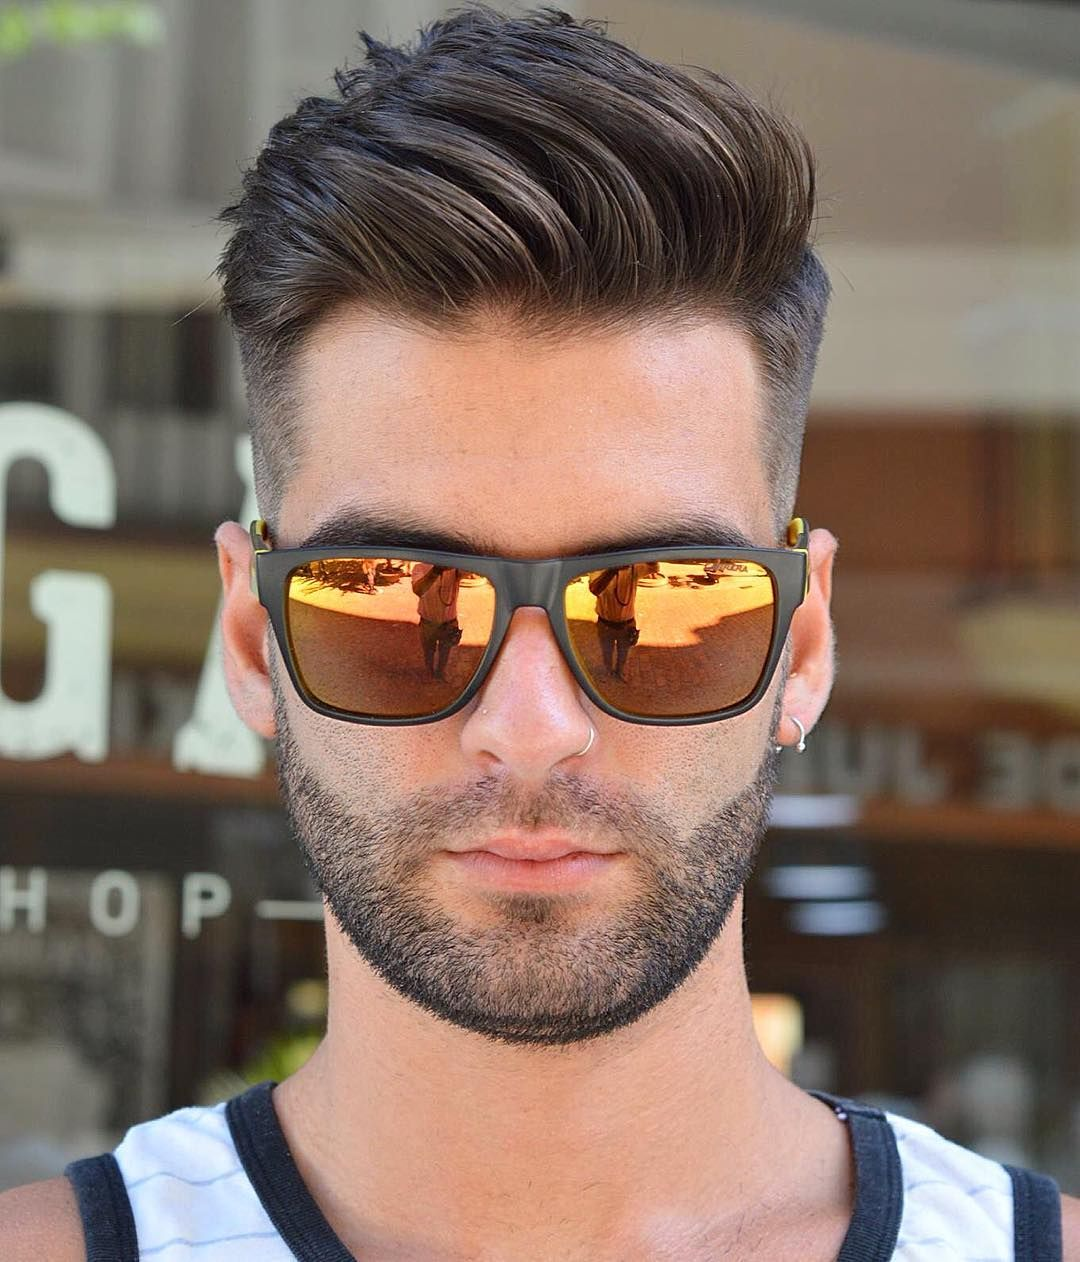 100+ new men's hairstyles for 2018 (top picks) | hairstyle